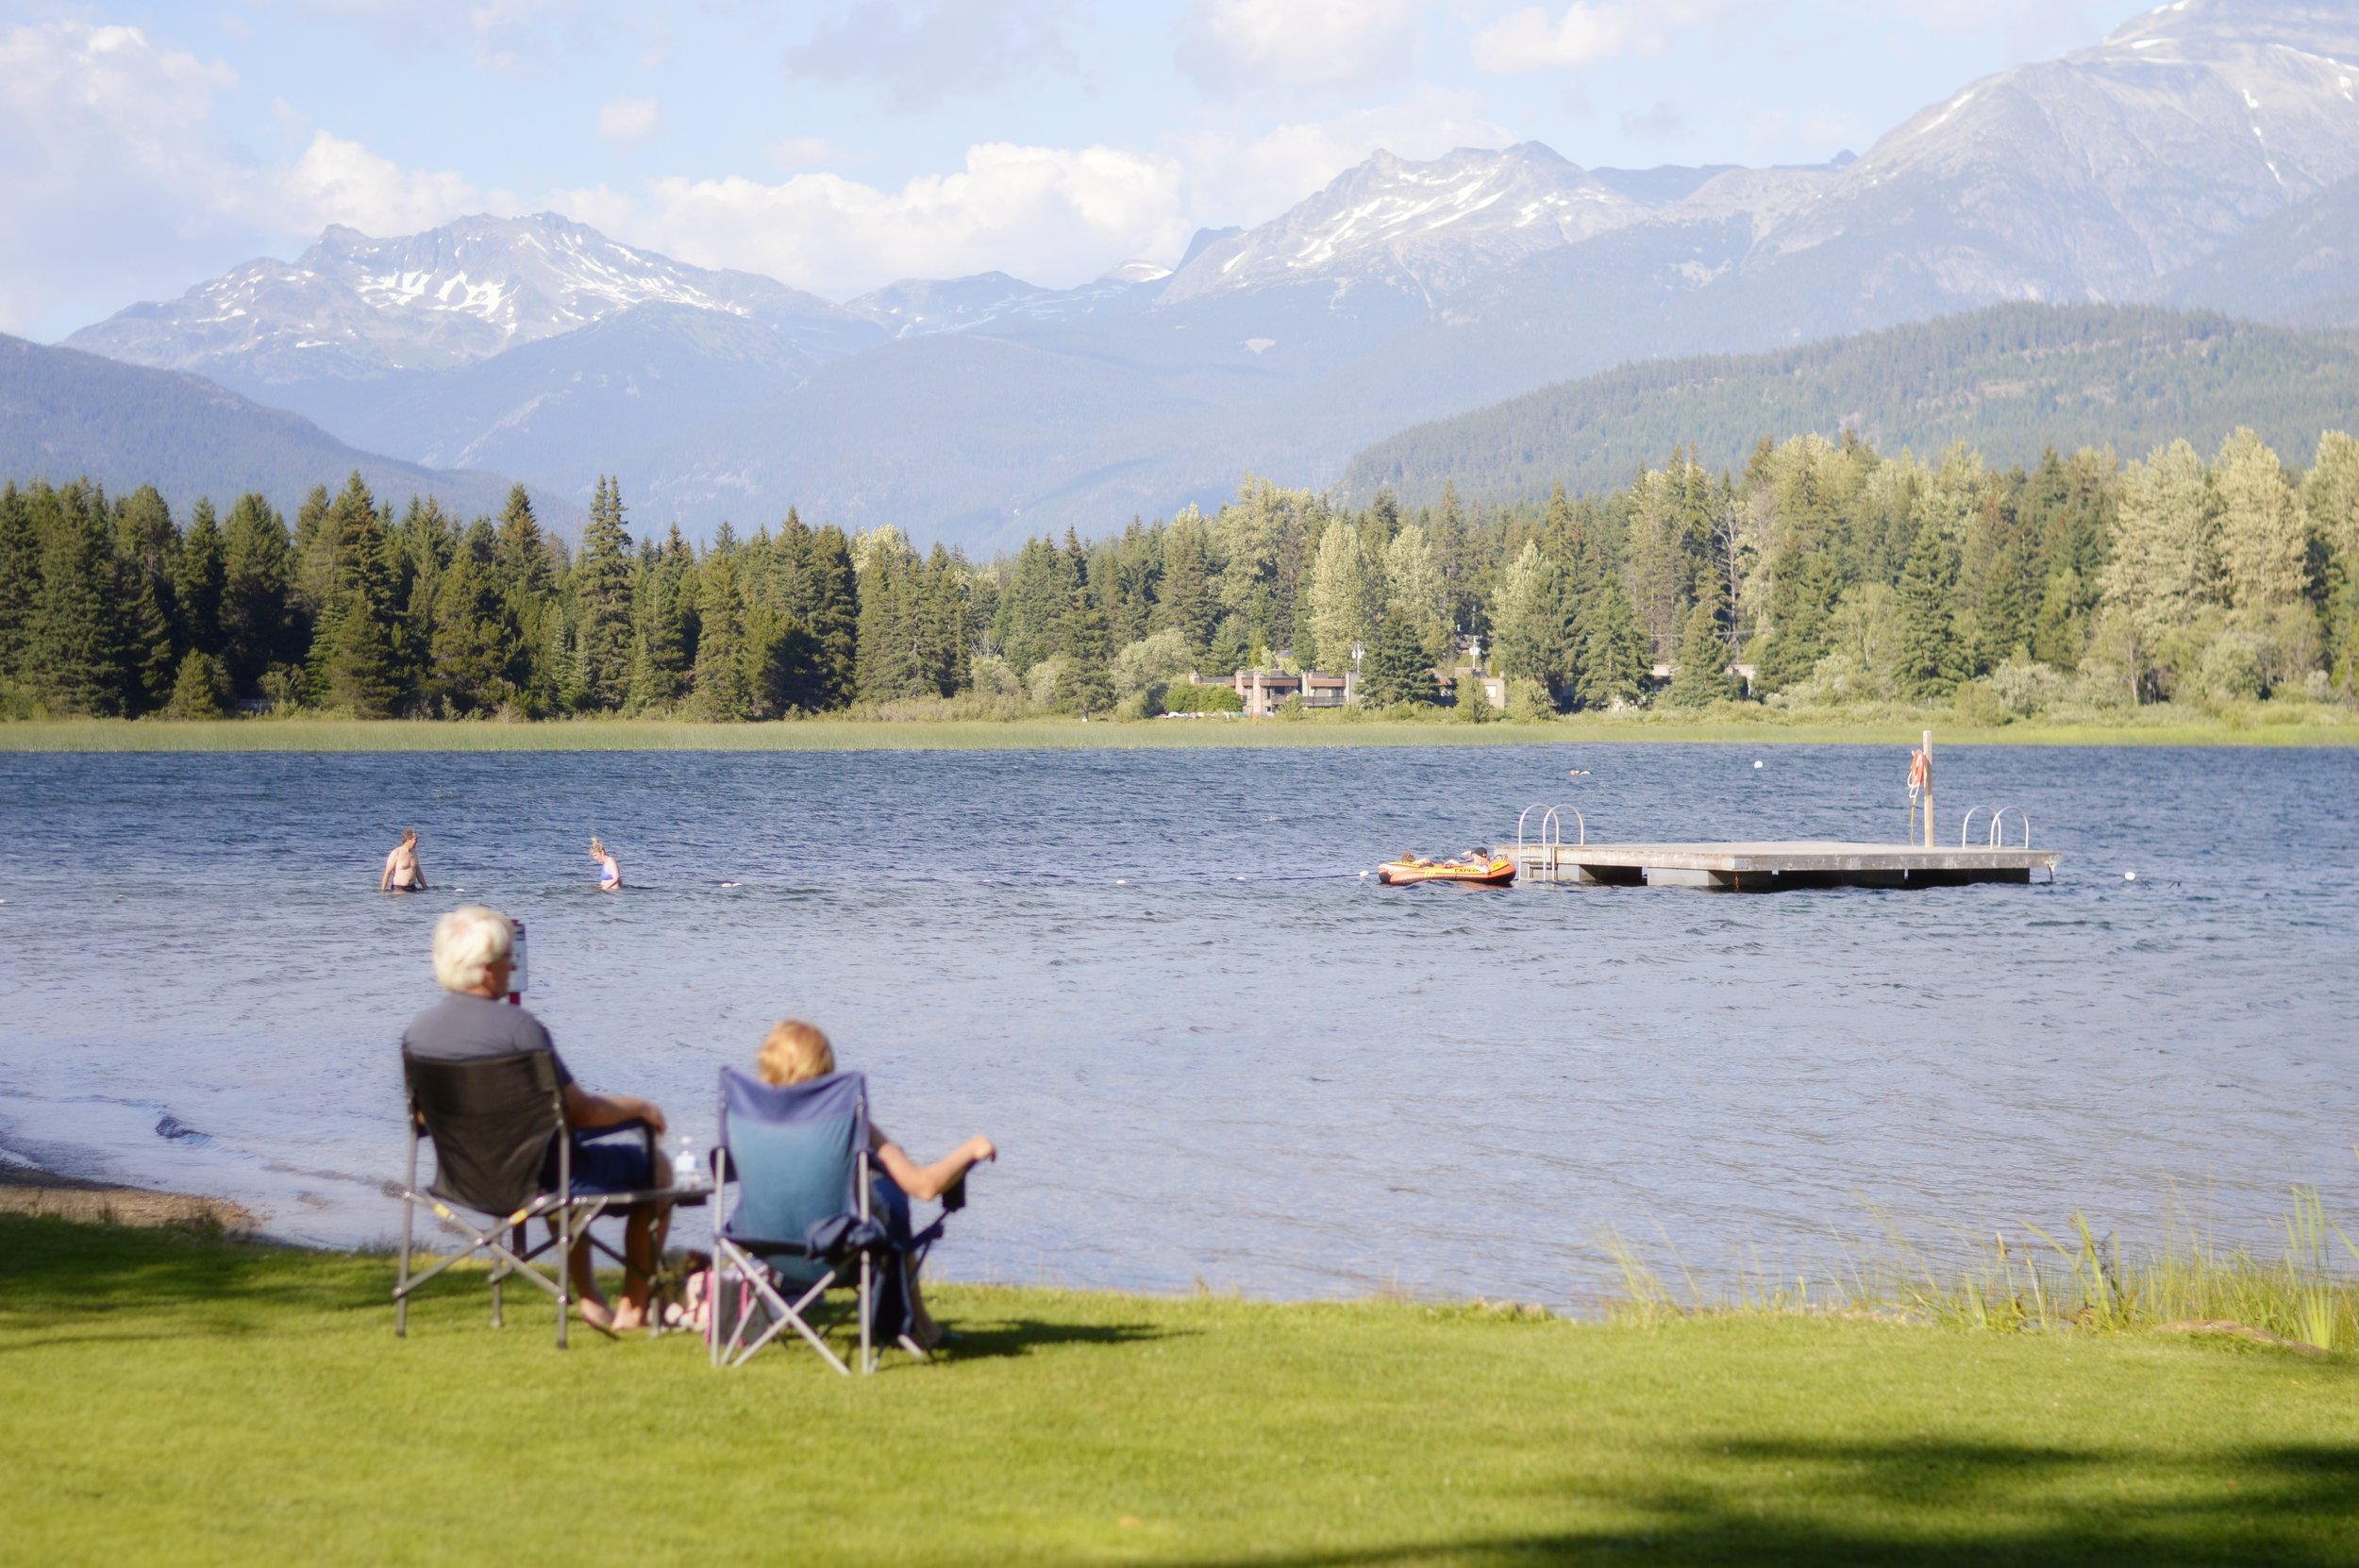 Retired couple sit by mountain lake enjoying the scenery.